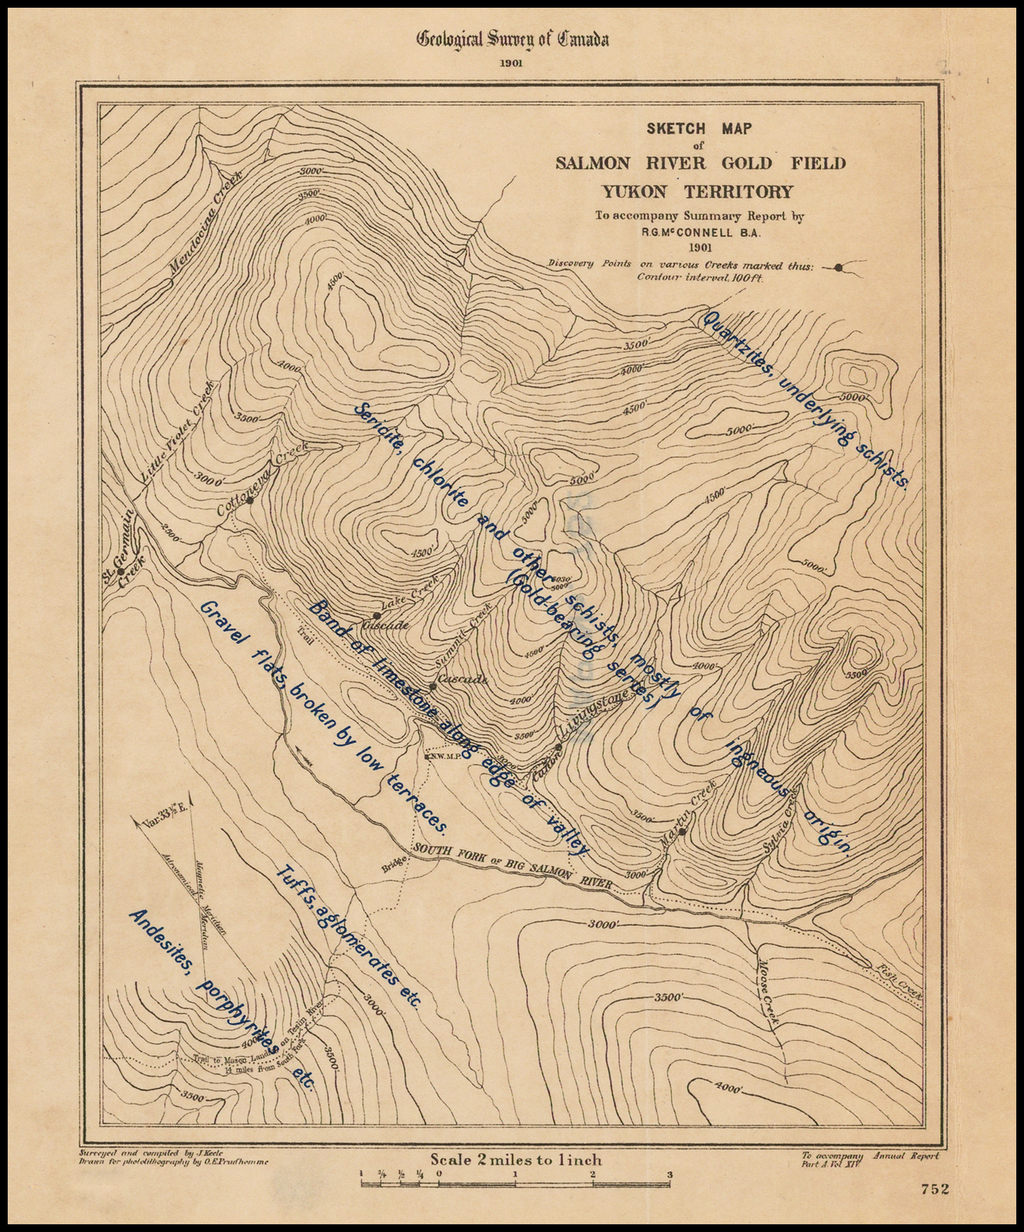 Sketch Map of Salmon River Gold Field Yukon Territory To accomapny Summary Report by R.G. McConnell B.A. 1901 By Geological Survey of Canada